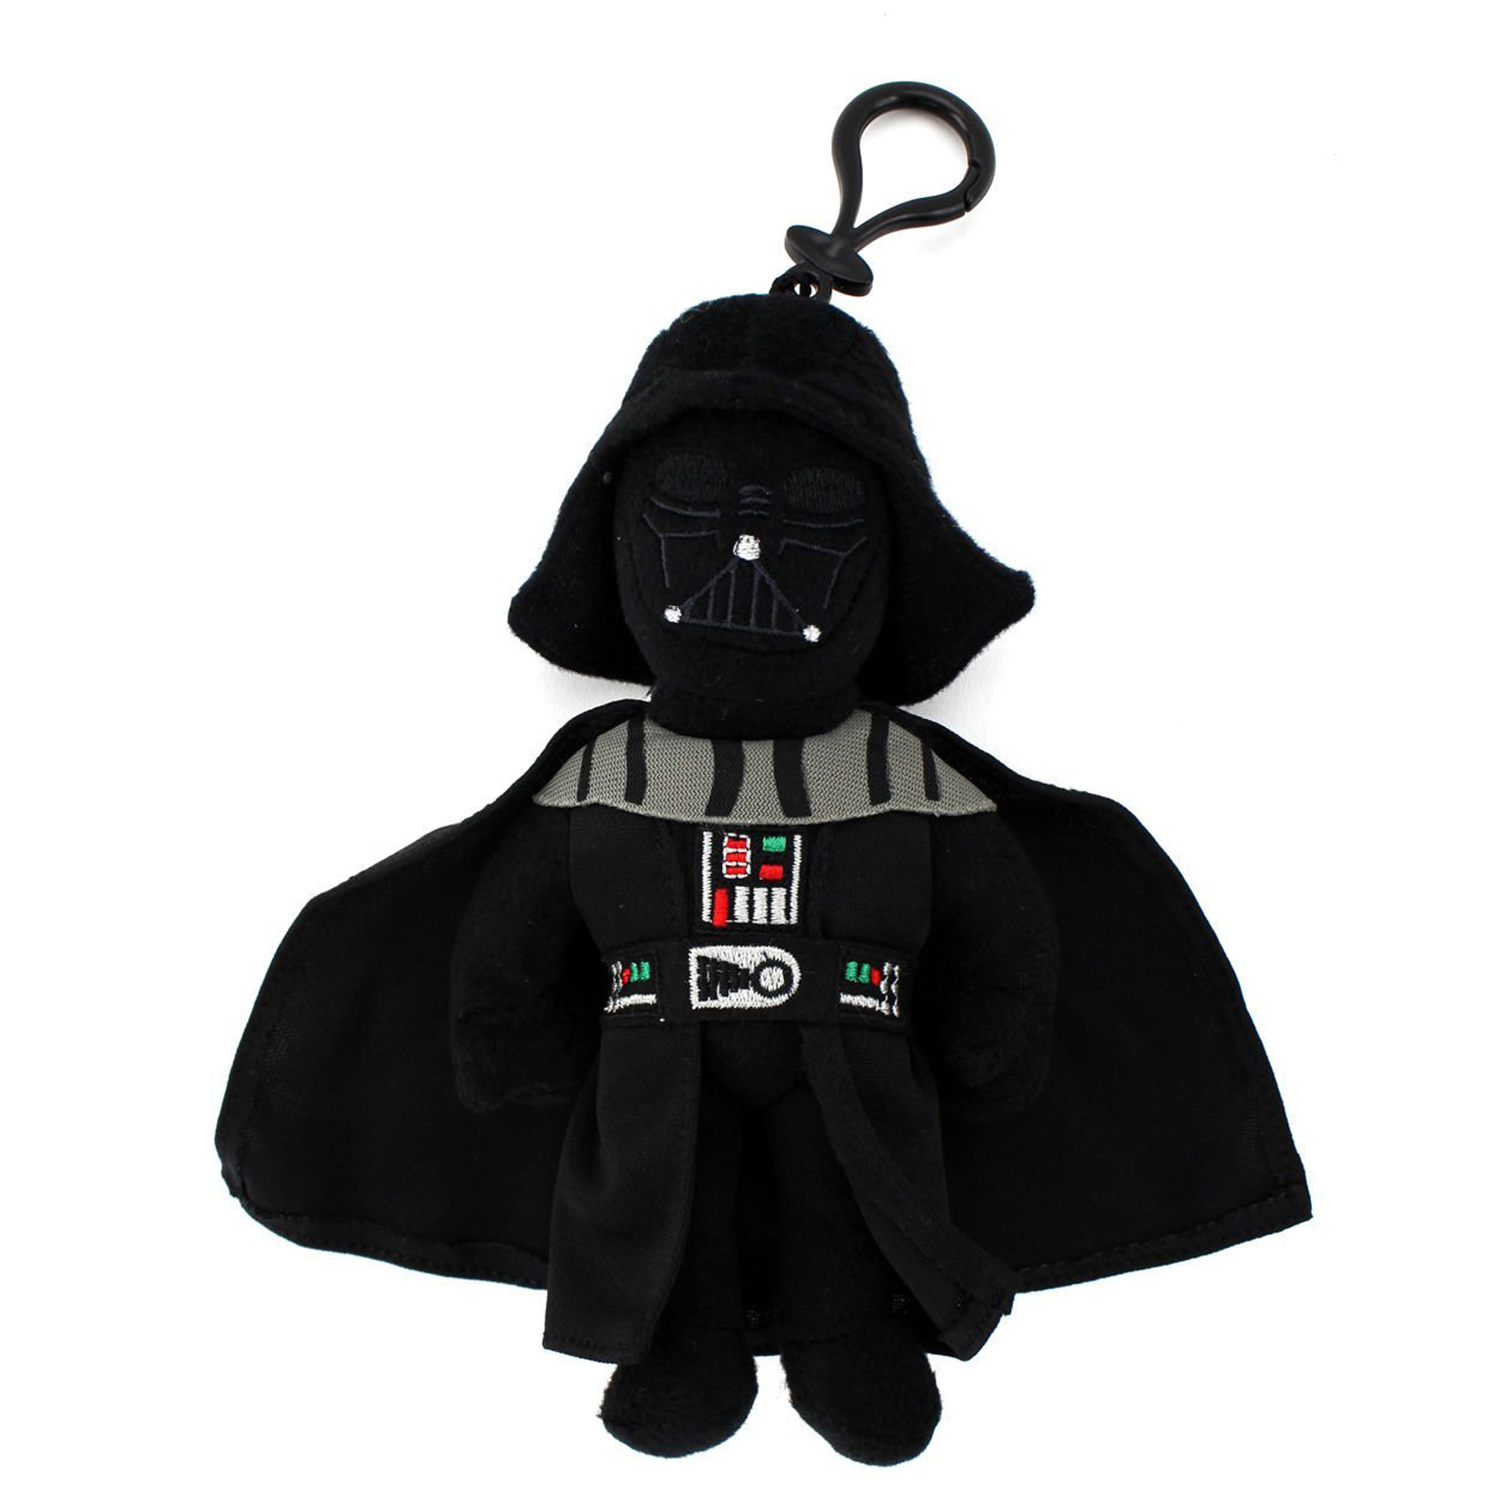 Cartoon-Plush-Coin-Clip-Toy-Bag-with-Zipper-for-Backpacks-Multiple-Styles thumbnail 29